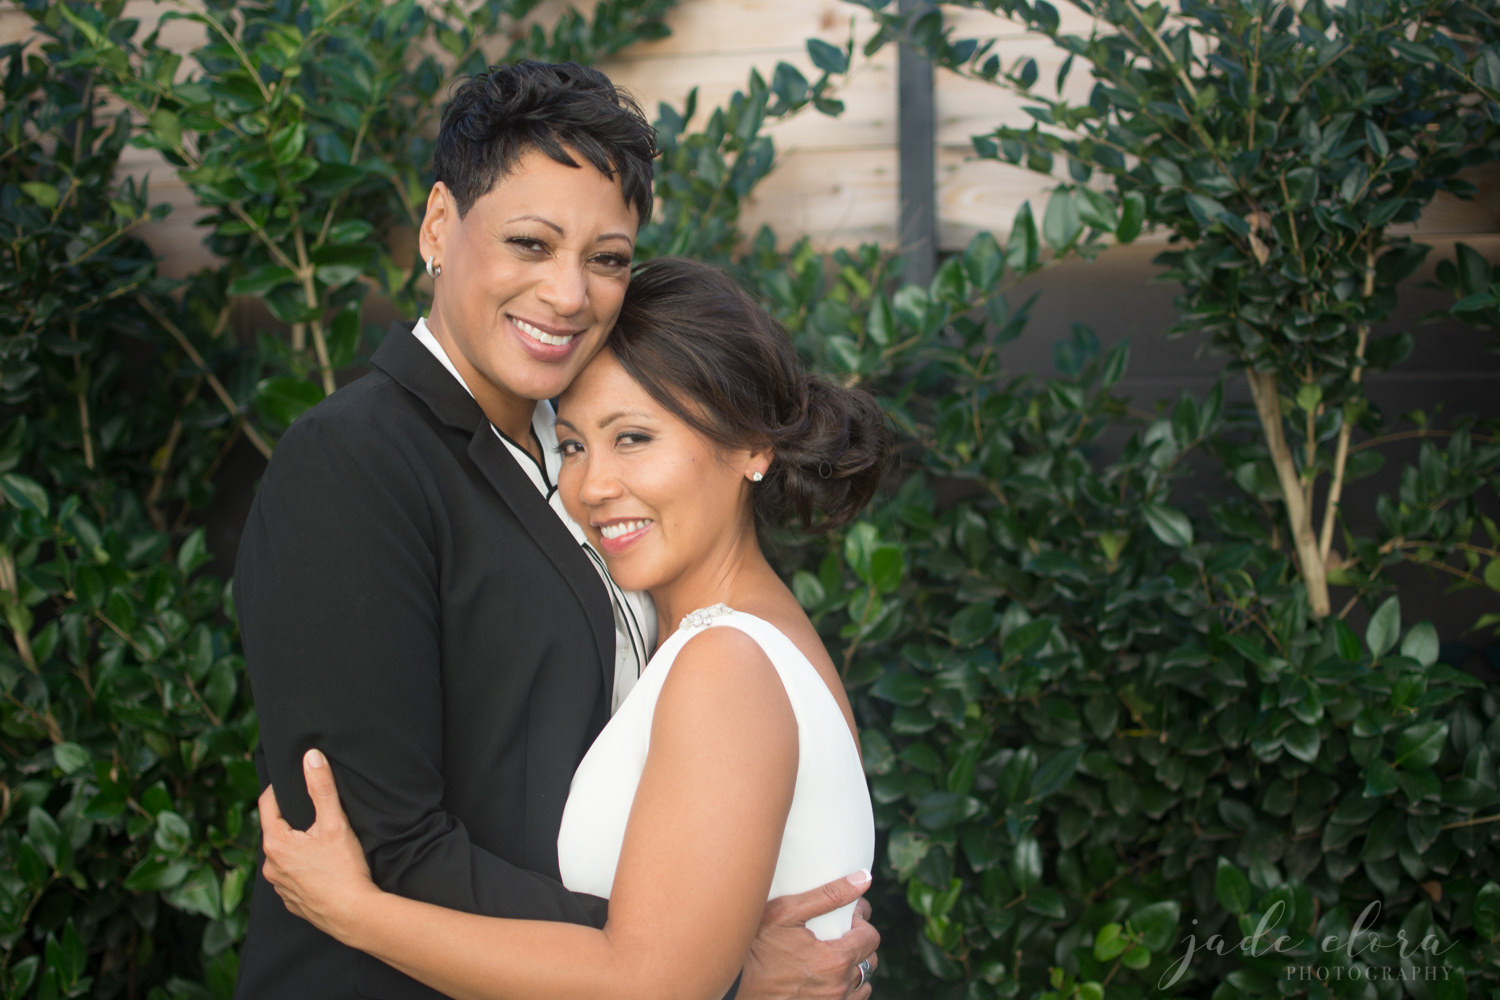 Gay Female Couple Hugging and Smiling for the Camera